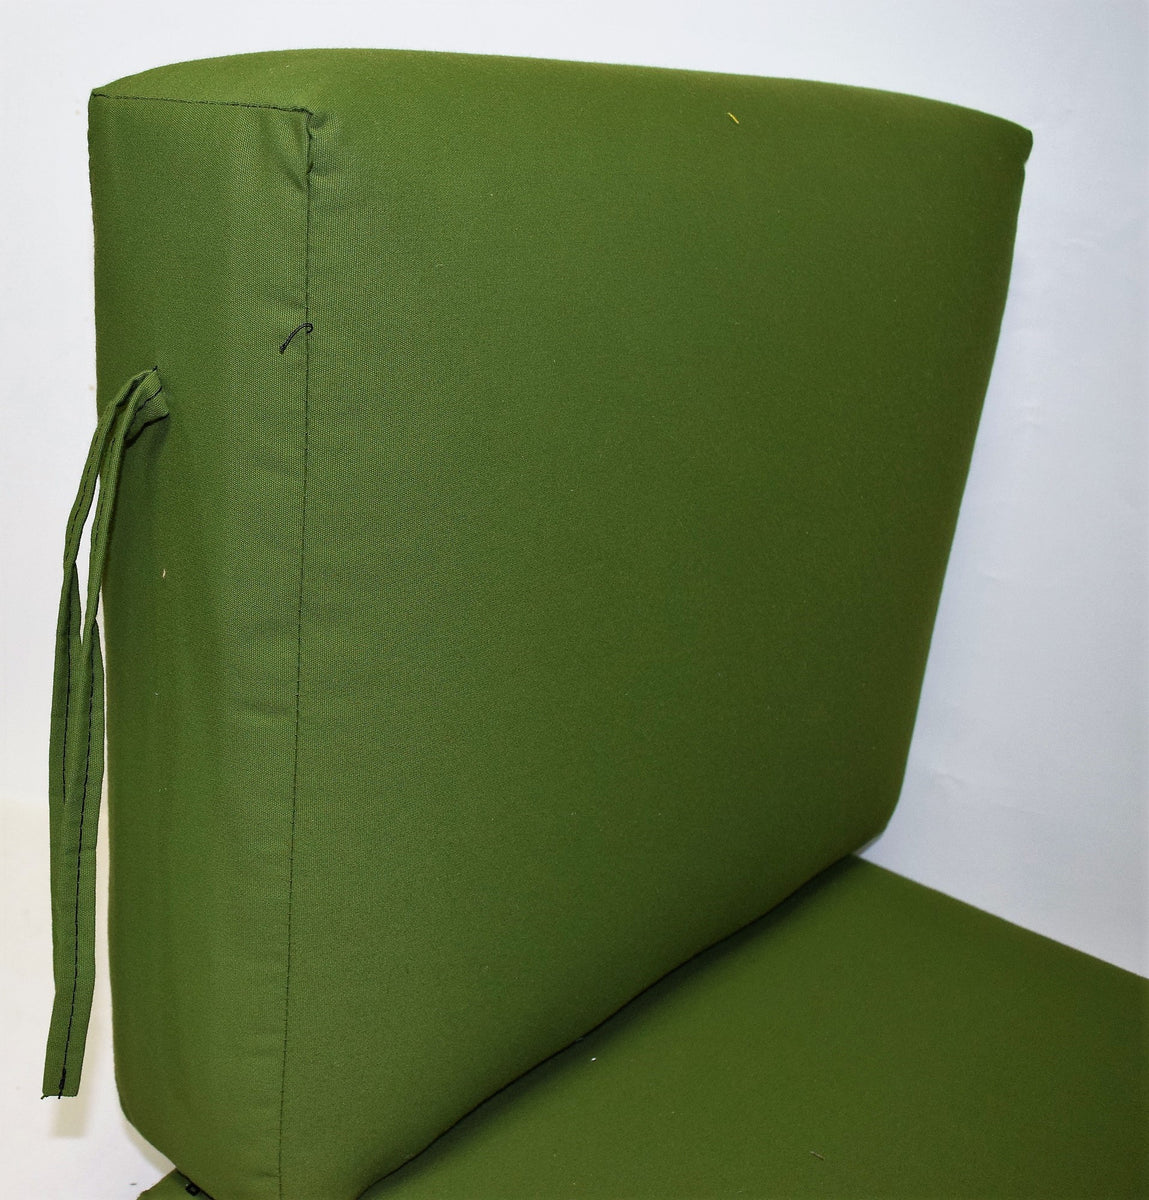 2 Piece 24 Wide X 26 Deep Seat X 20 High Back With Ties